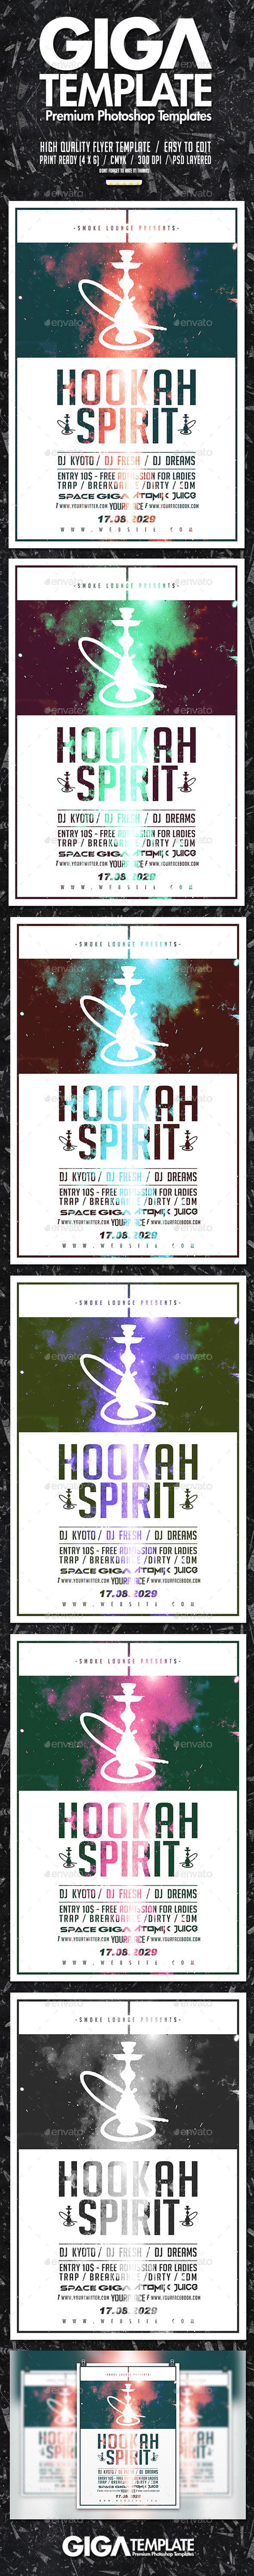 Hookah Spirit   Dope Style Chill Minimal Flyer Template PSD. Download here: https://graphicriver.net/item/hookah-spirit-dope-style-chill-minimal-flyer-psd-template/17492968?ref=ksioks